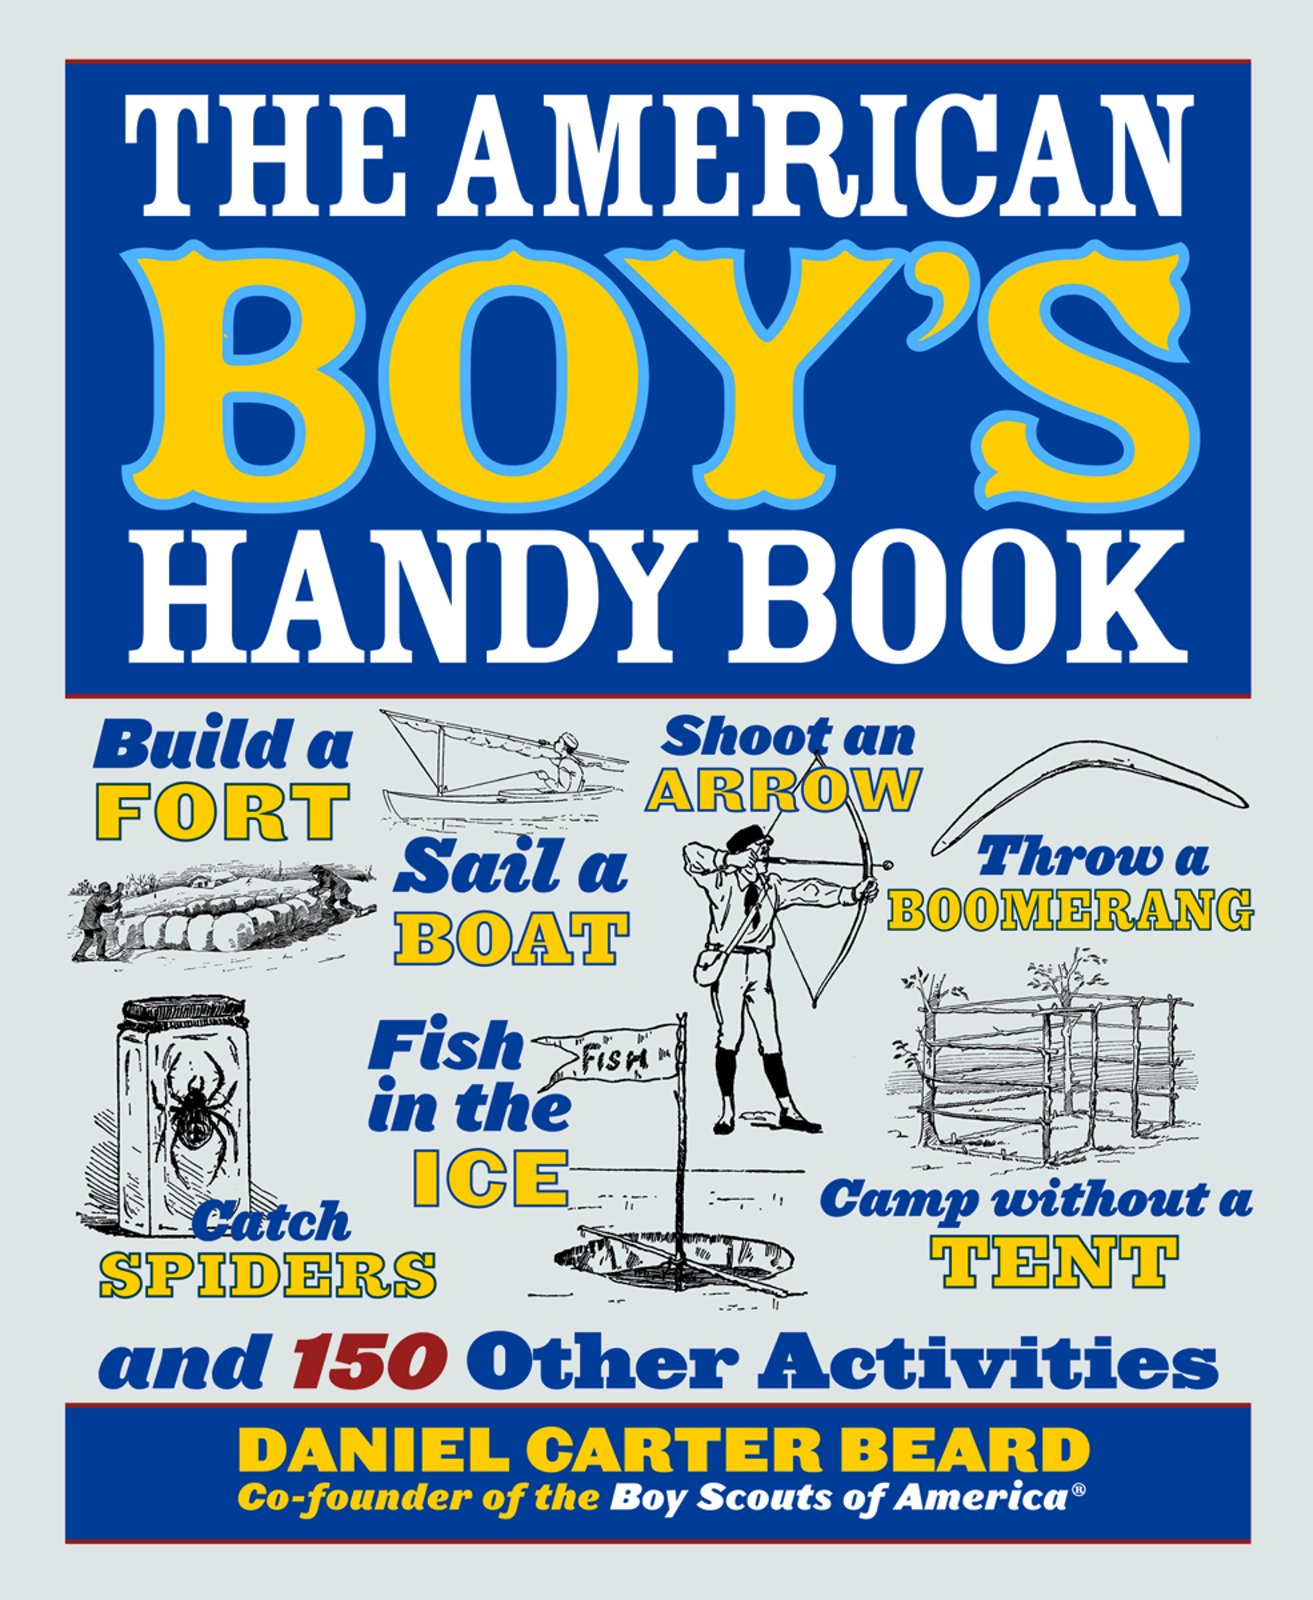 The American Boy's Handy Book: Build a Fort, Sail a Boat, Shoot an Arrow,  Throw a Boomerang, Catch Spiders, Fish in the Ice, Camp w: Daniel Carter  Beard: ...